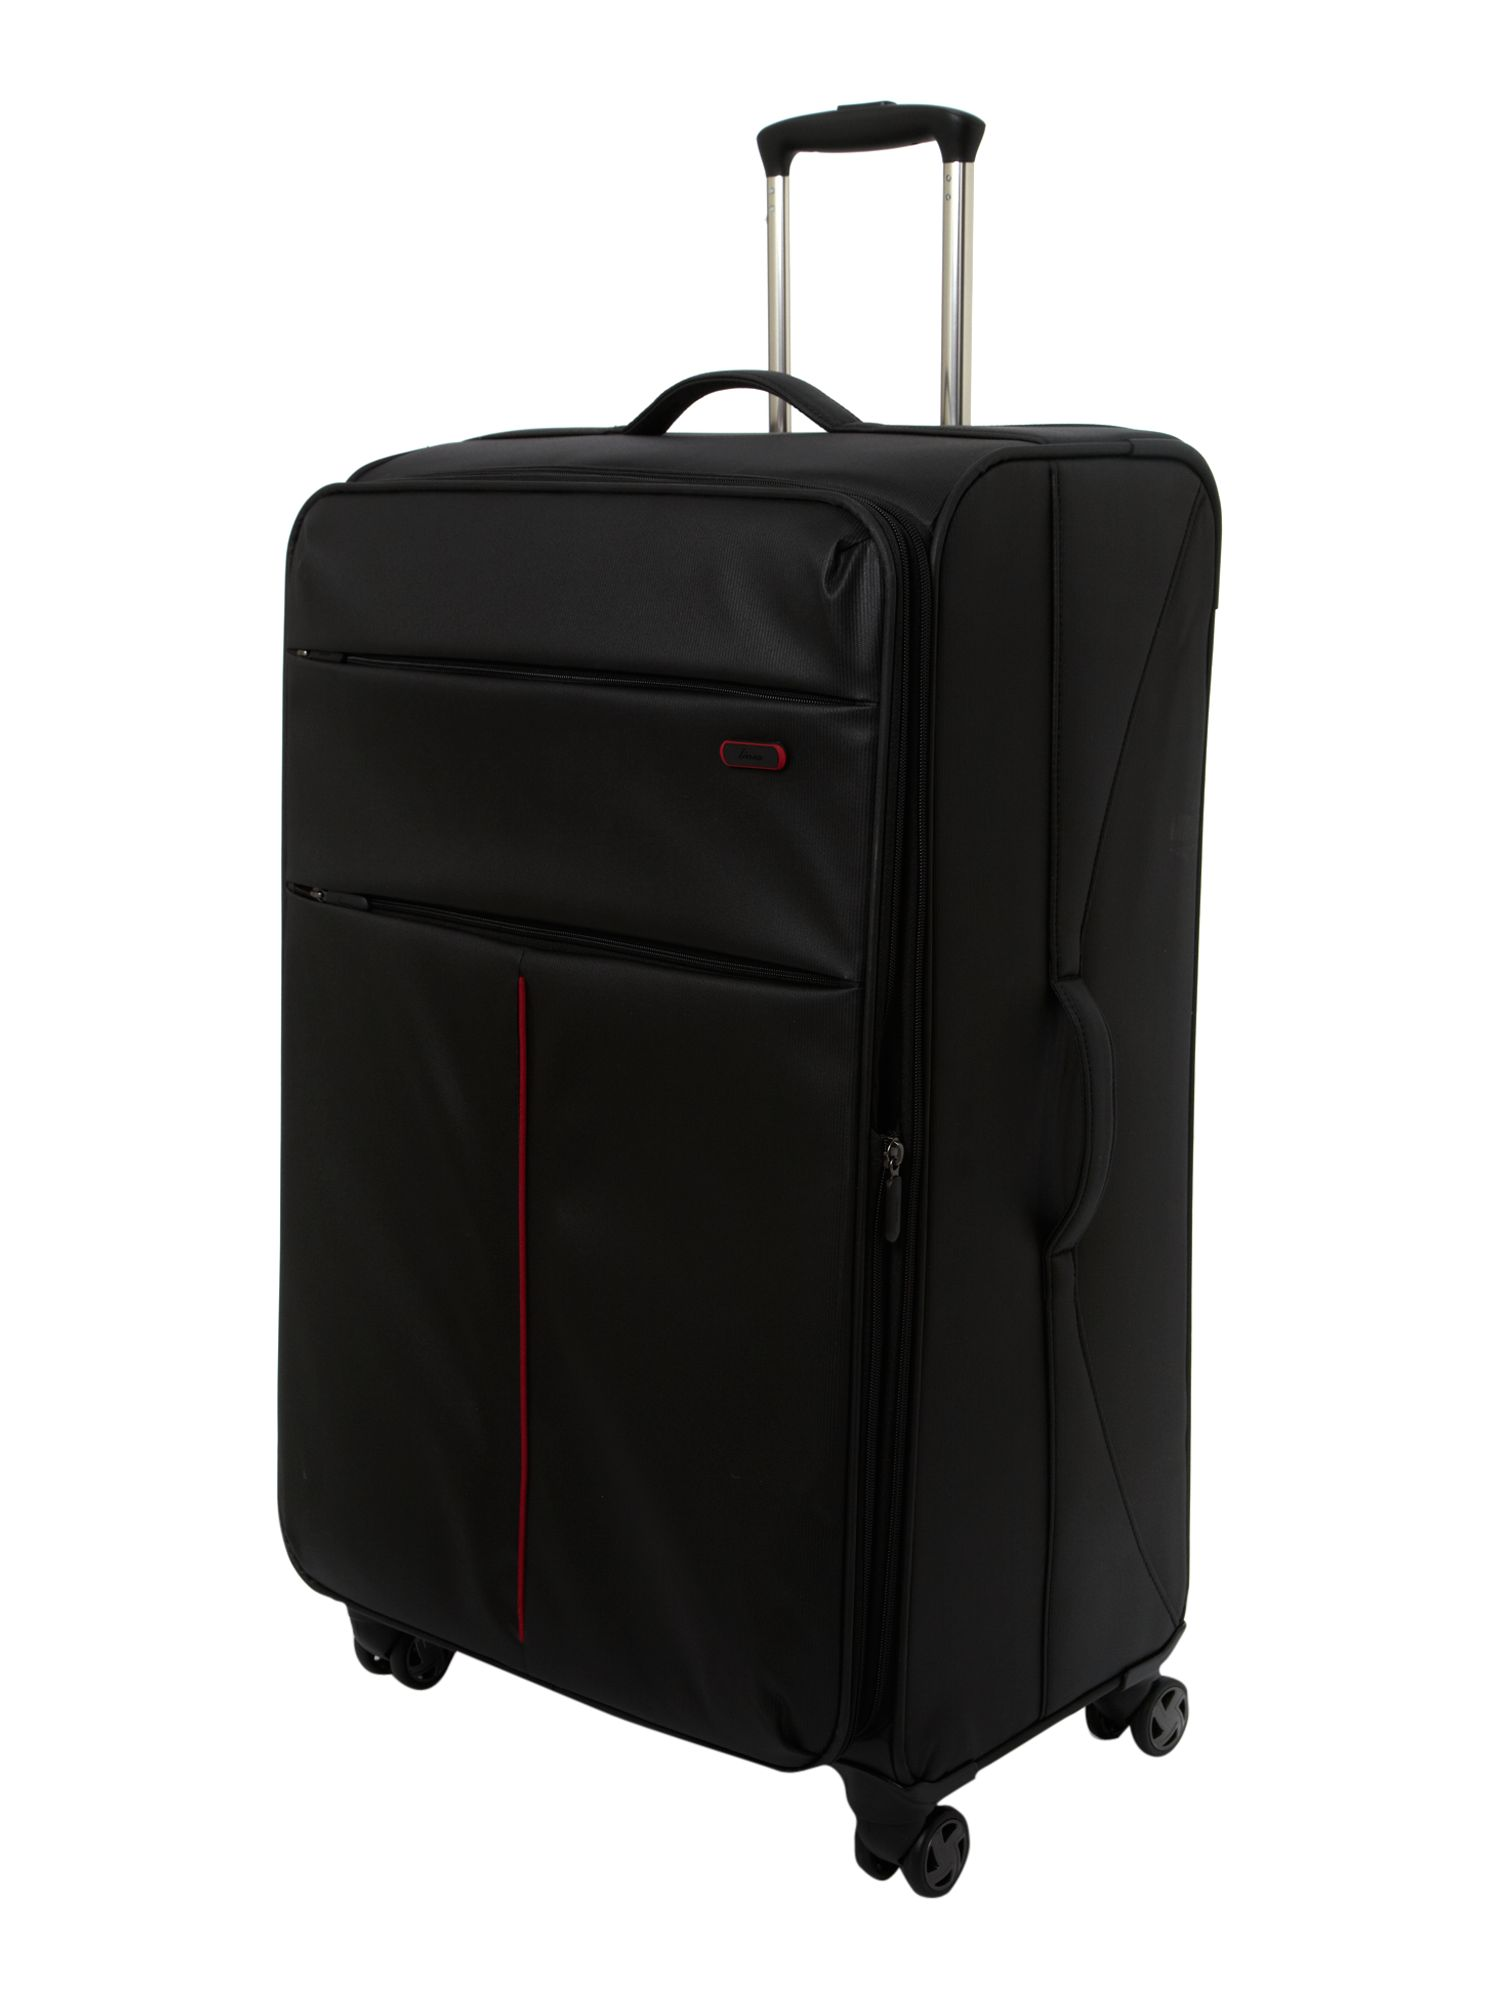 Linea Spacelite Large 4 Wheel Suitcase - House of Fraser